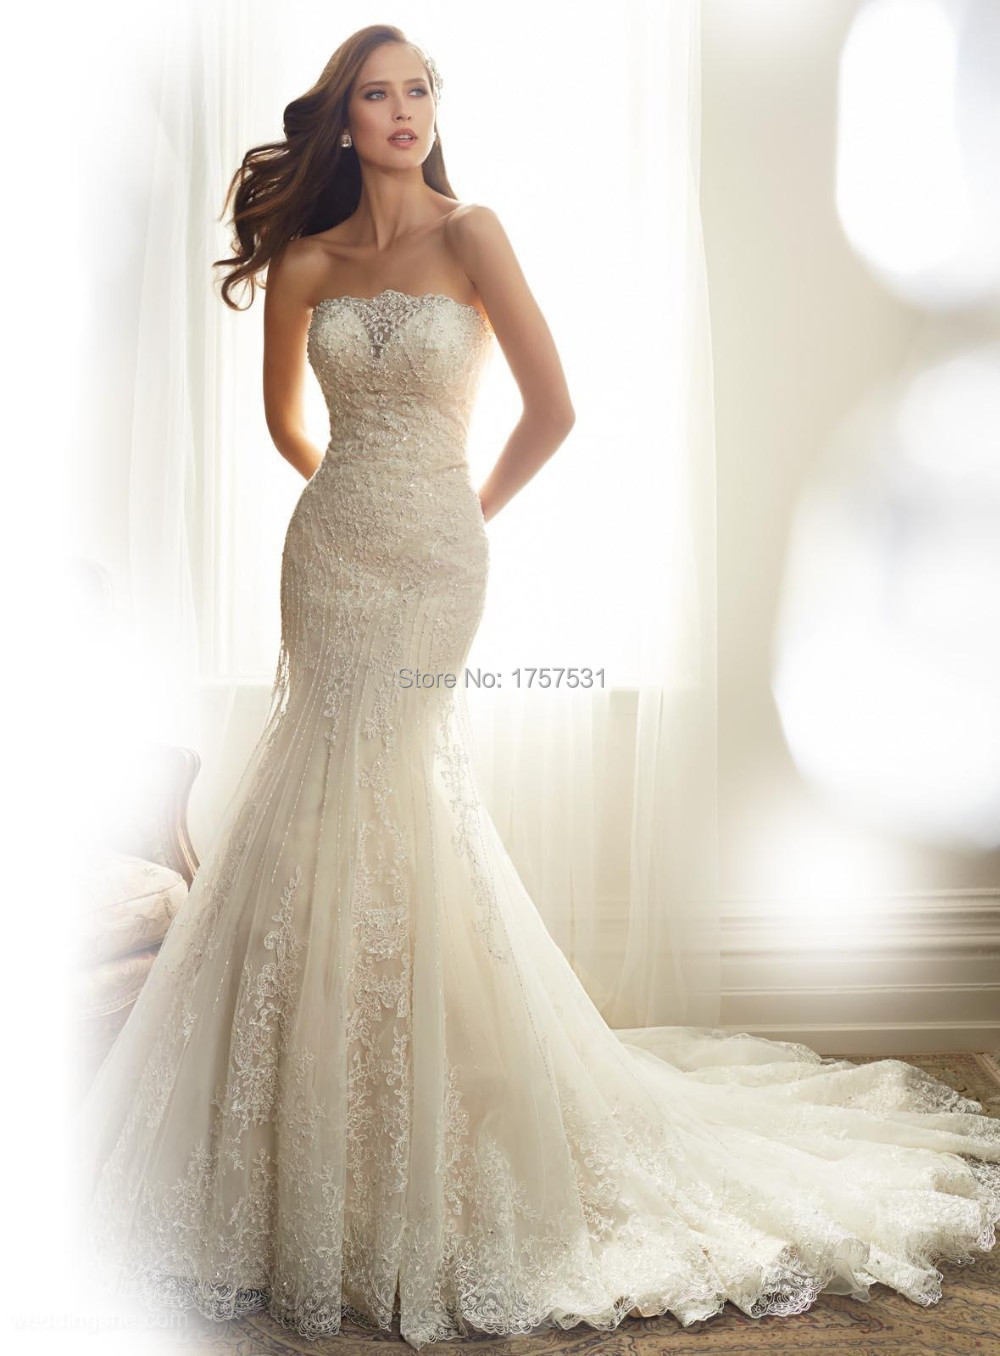 charming 2015 white ivory elegant mermaid wedding dress